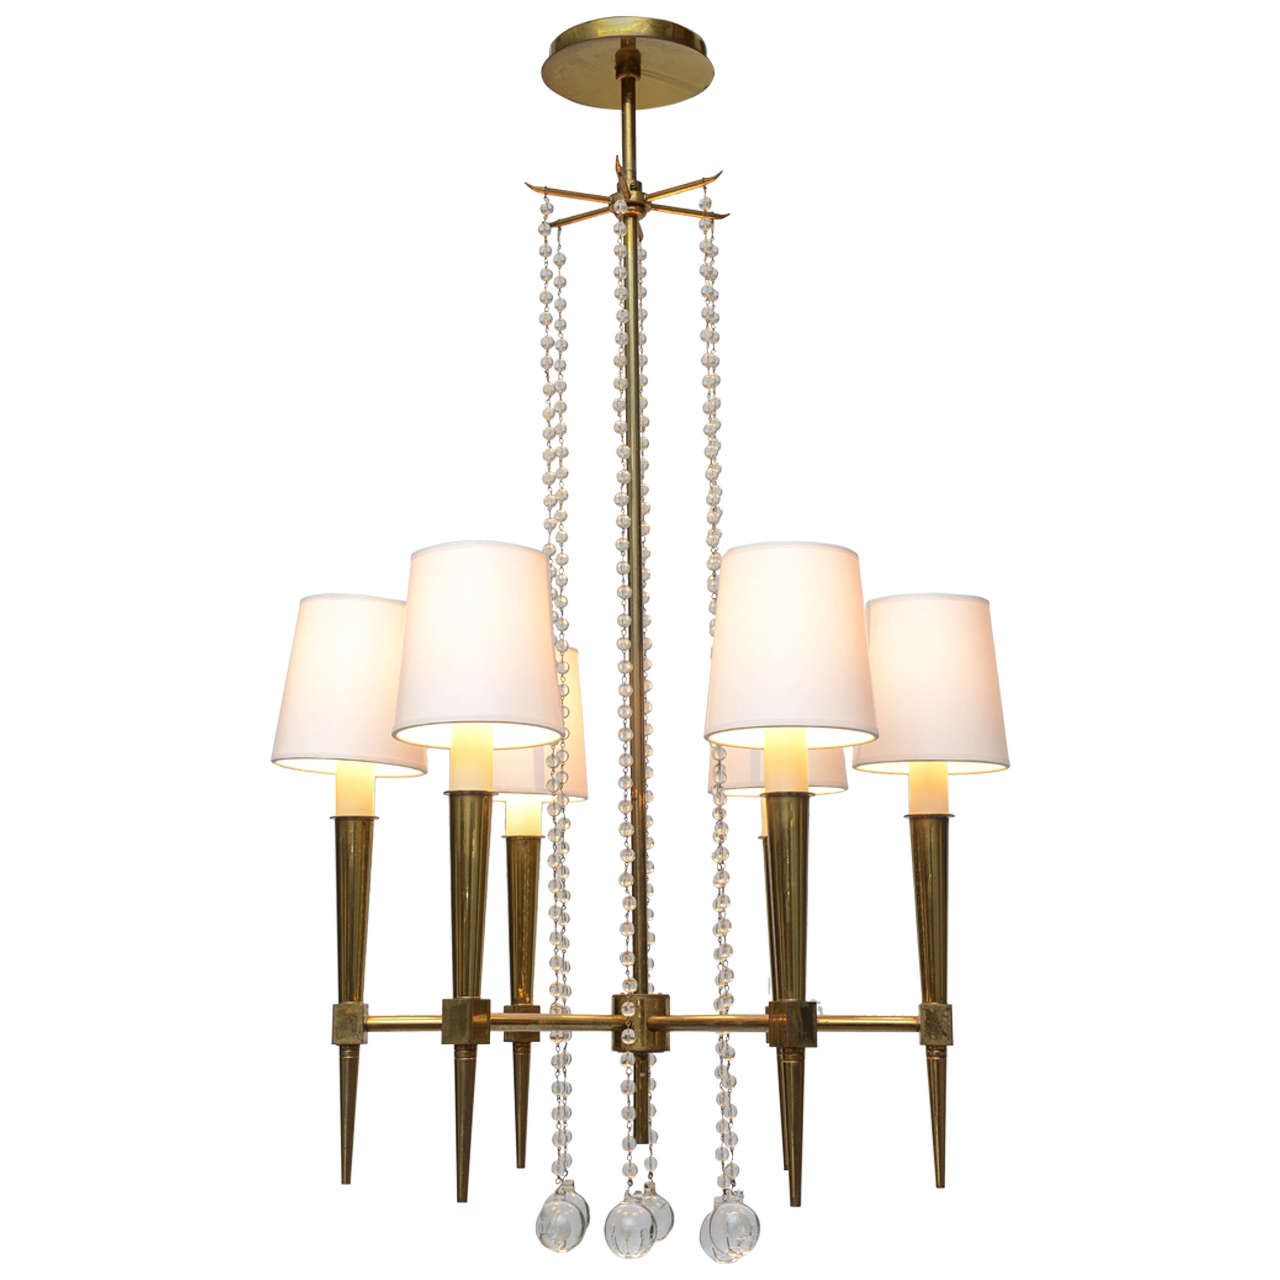 Tommi Parzinger Six-Arm Chandelier